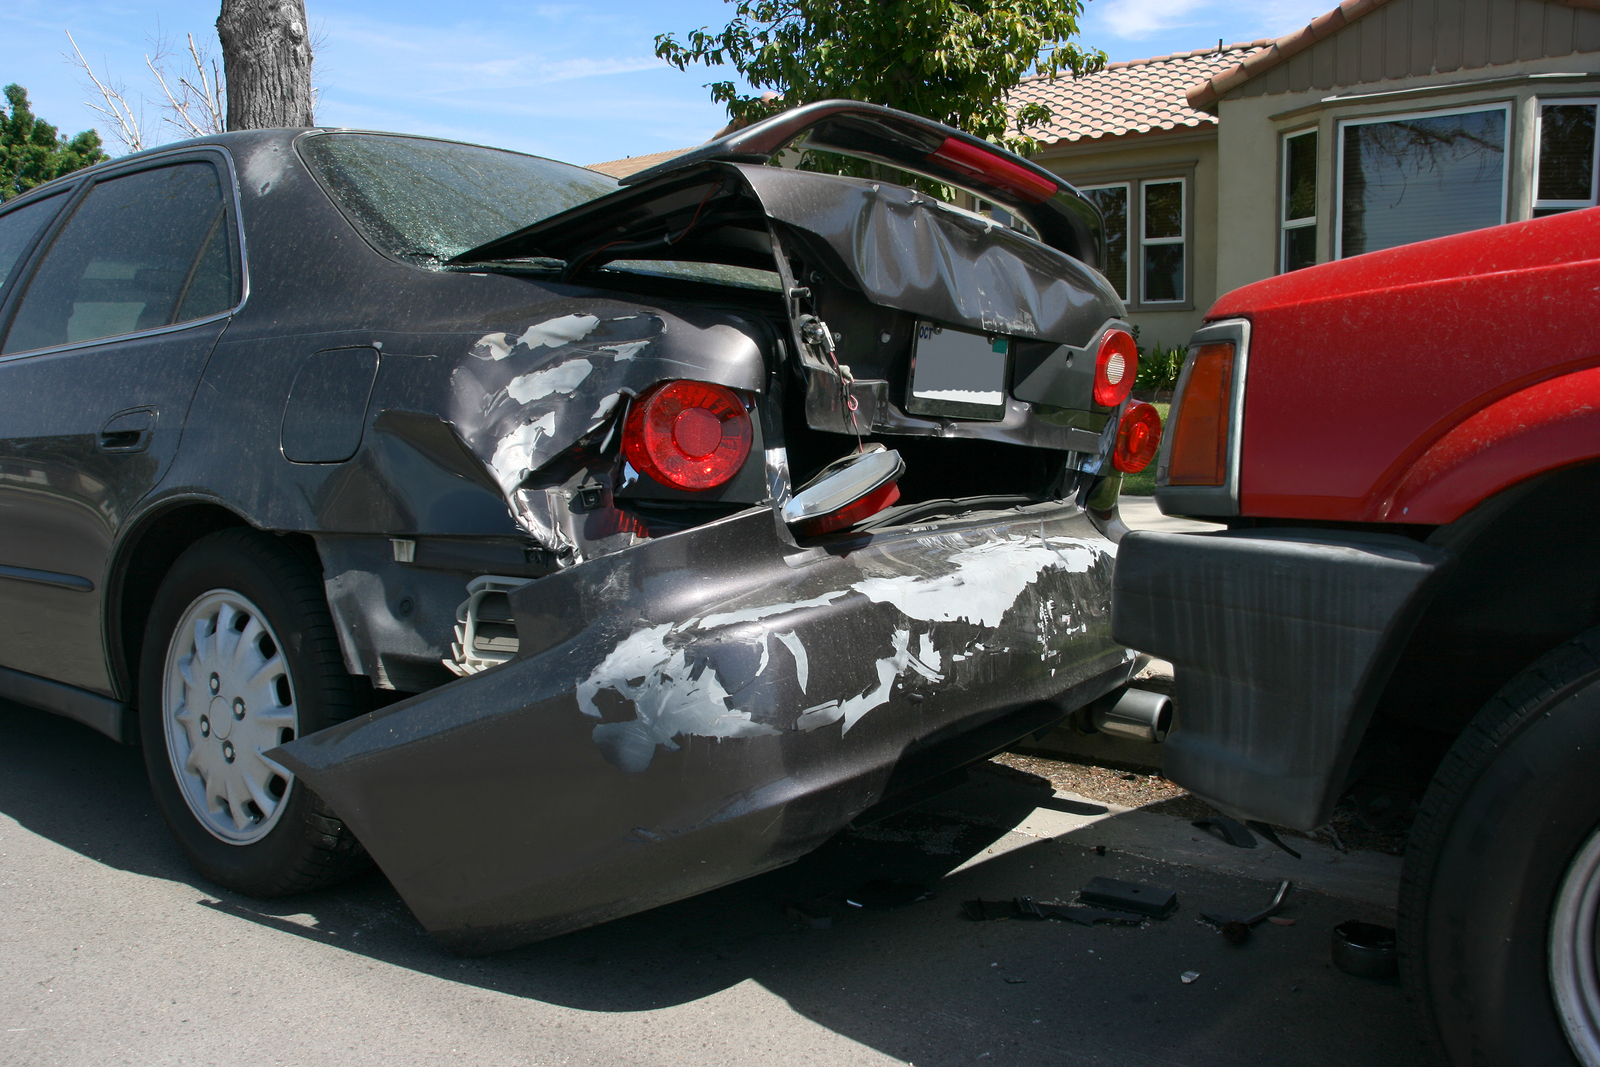 bigstock-Car-Accident-2838103